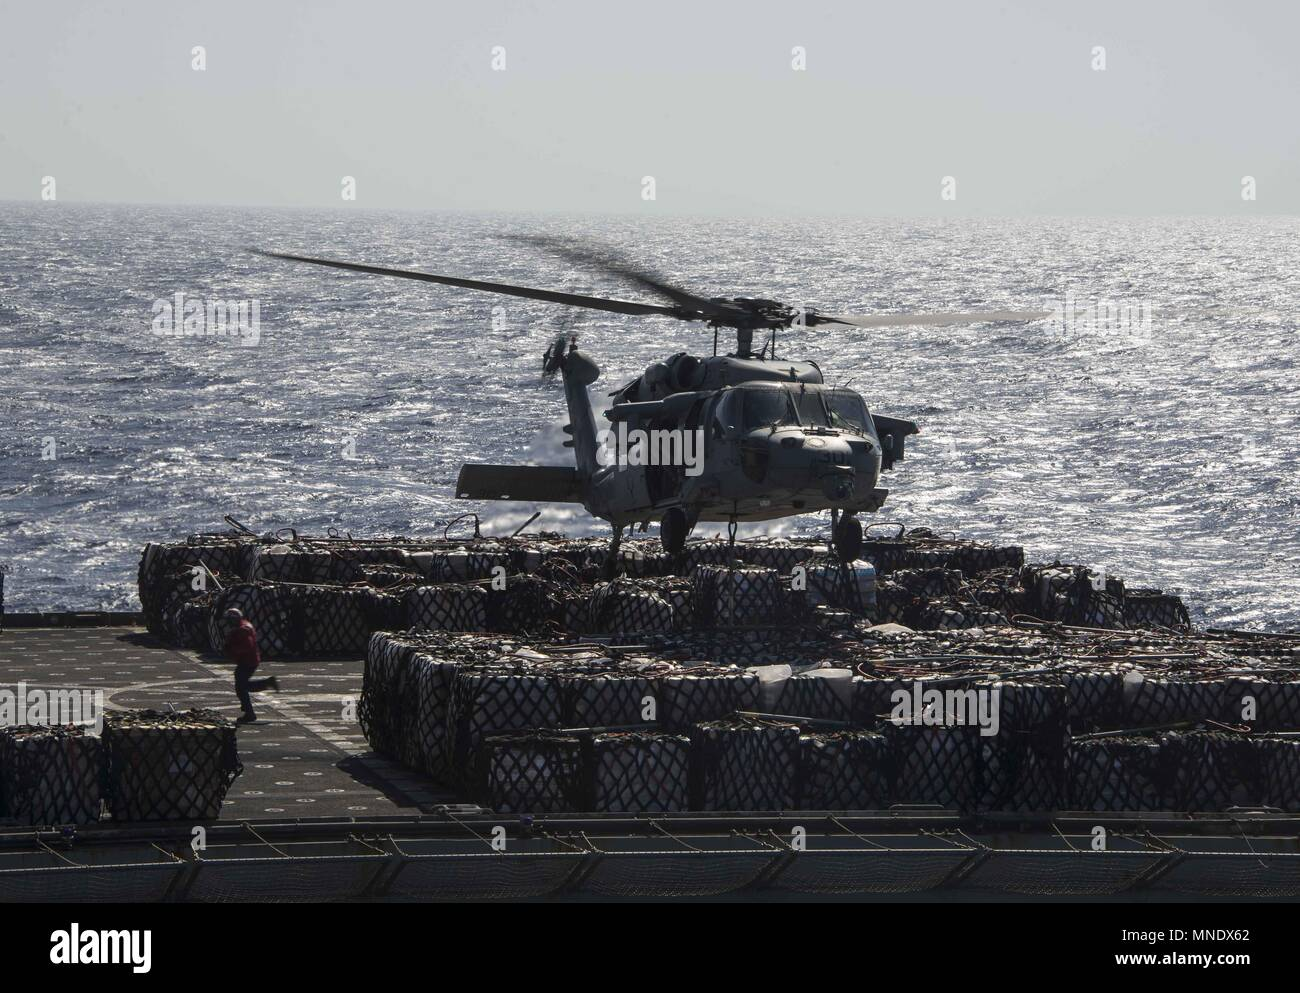 180515-N-AH771-0129 U.S. 5TH FLEET AREA OF OPERATIONS (May 15, 2018) An MH-60s Seahawk, attached to Helicopter Sea Squadron (HSC) 28, tows pallets from the dry cargo and ammunition ship USNS Amelia Earhart (T-AKE 6) to the Wasp-class amphibious assault ship USS Iwo Jima (LHD 7) during a replenishment-at-sea, May 15, 2018, May 15, 2018. Iwo Jima, homeported in Mayport, Fla. is on deployment to the U.S. 5th Fleet area of operations in support of maritime security operations to reassure allies and partners, and preserve the freedom of navigation and the free flow of commerce in the region. (U.S.  Stock Photo